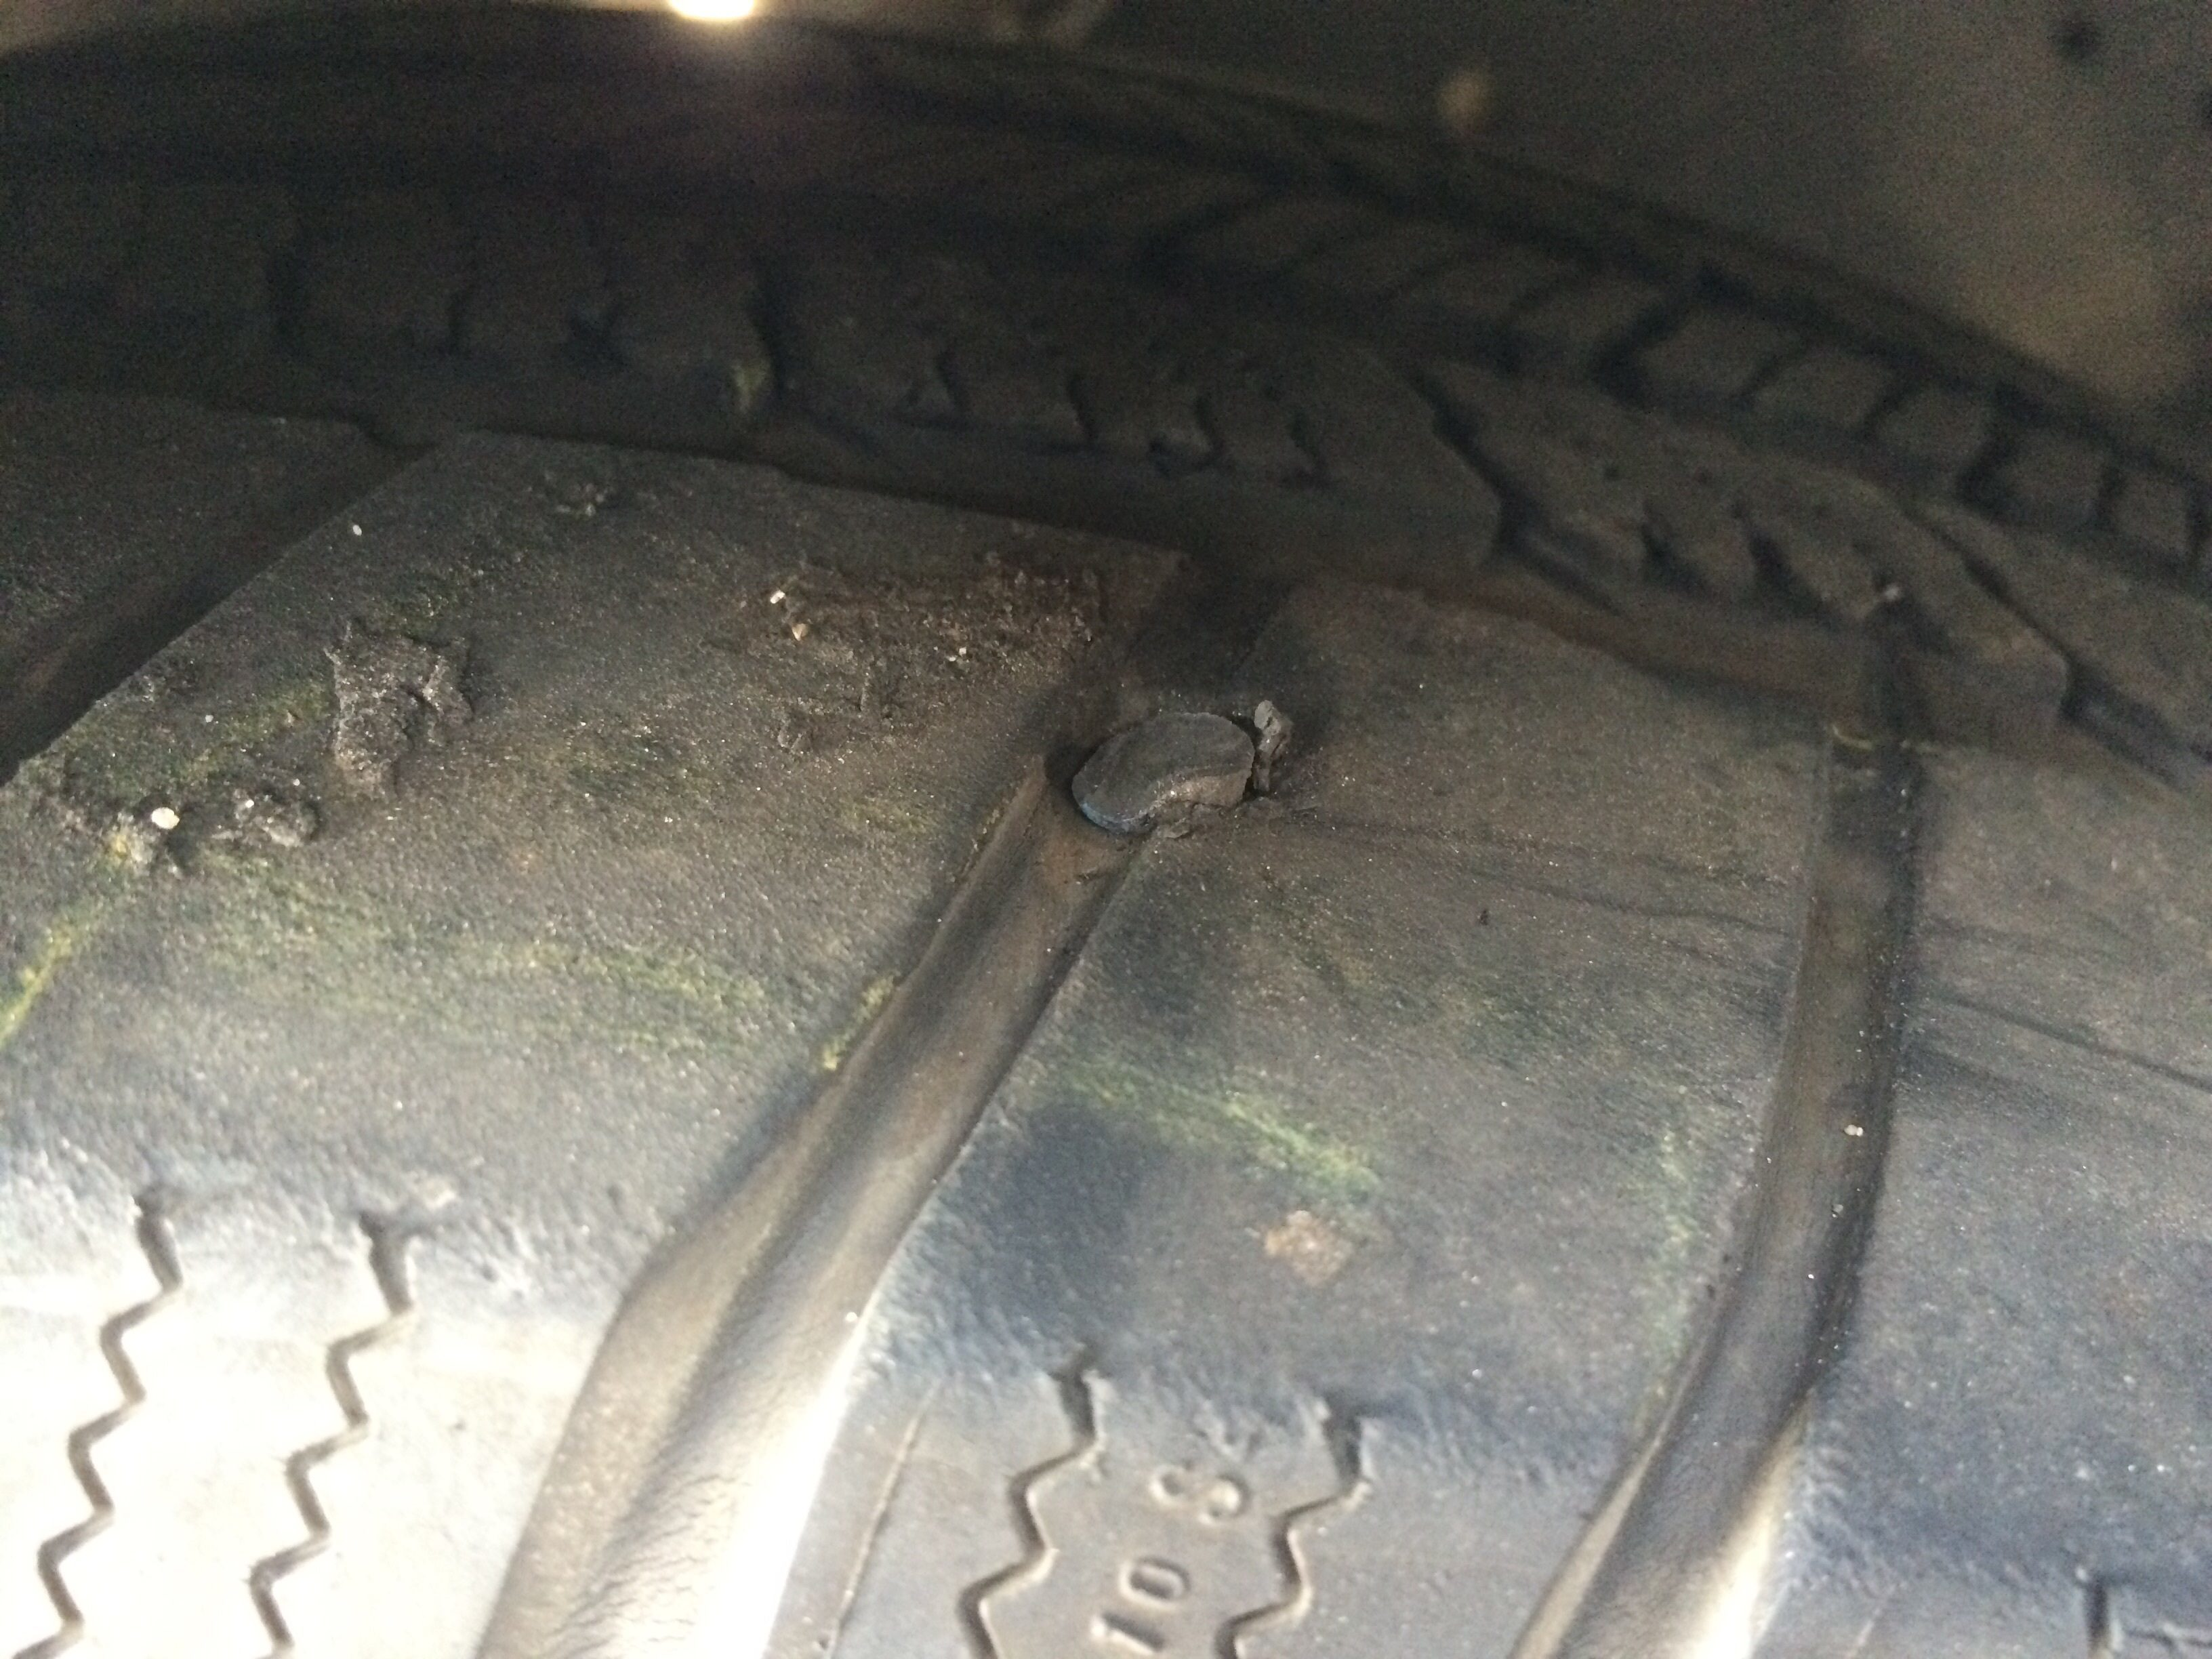 I need help writing a good review for a great diesel truck repair shop?